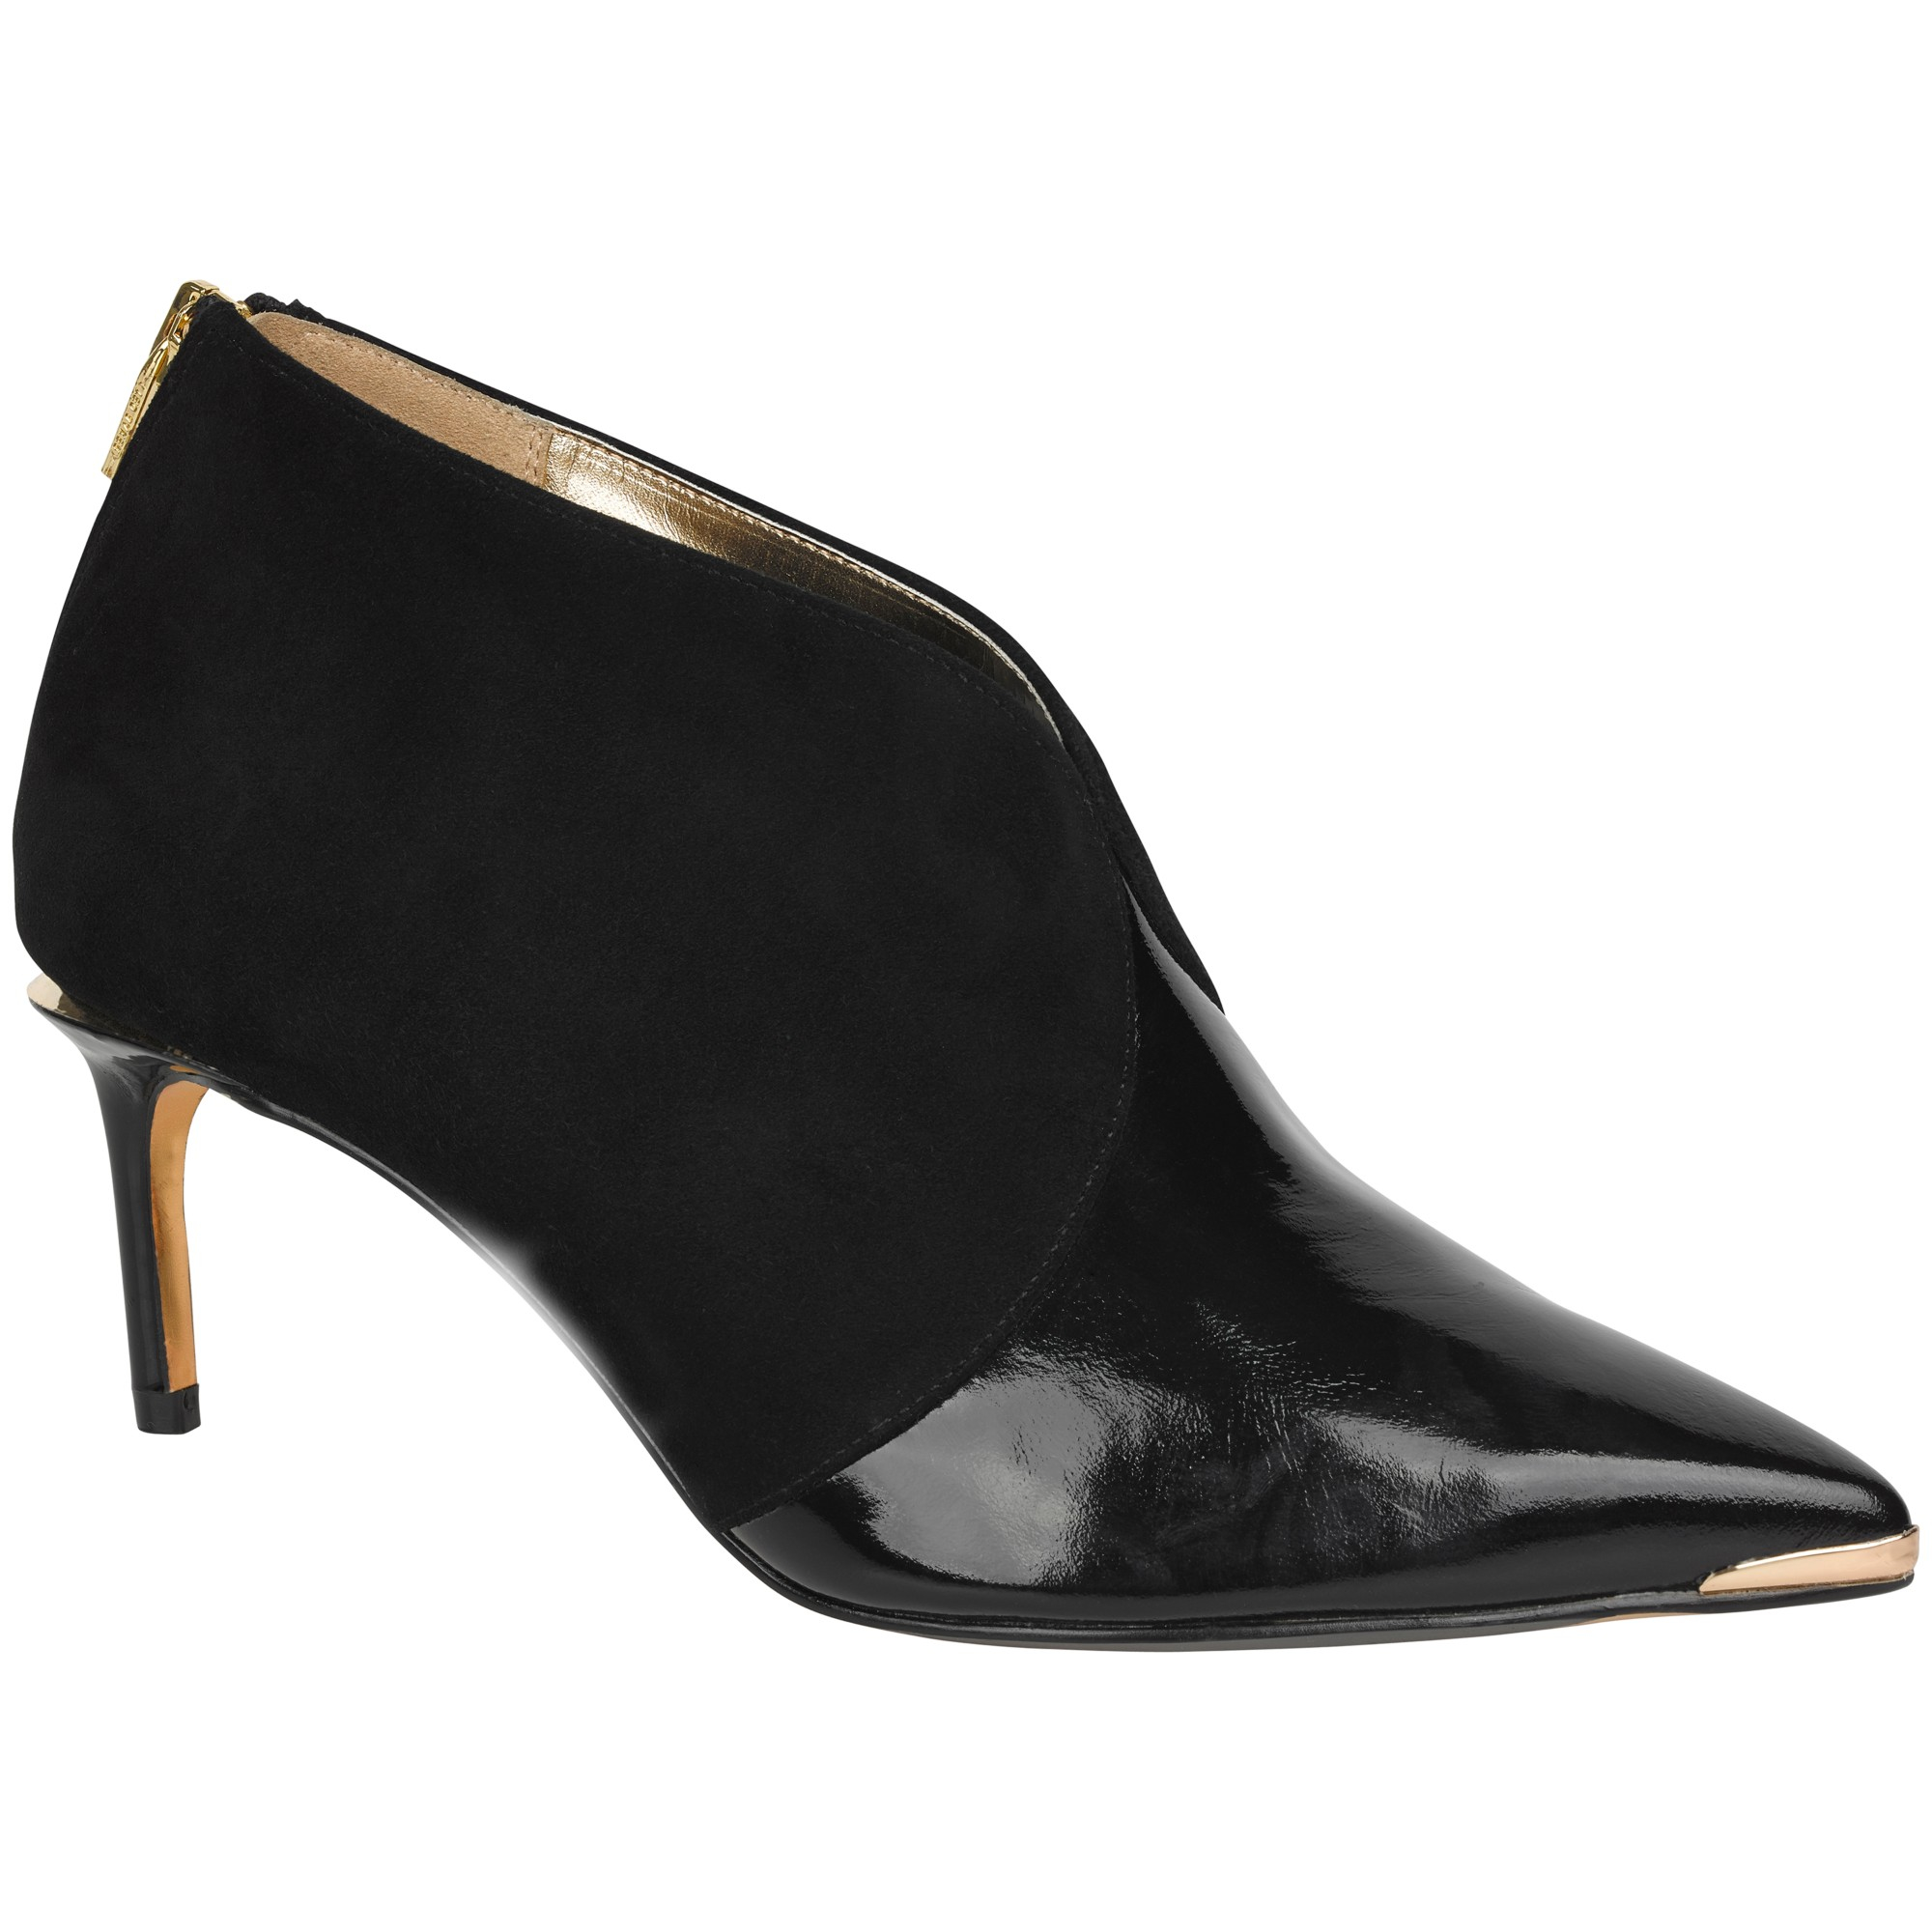 c8ab6d5552edc Ted Baker Hainns Suede Pointed Ankle Boots in Black - Lyst